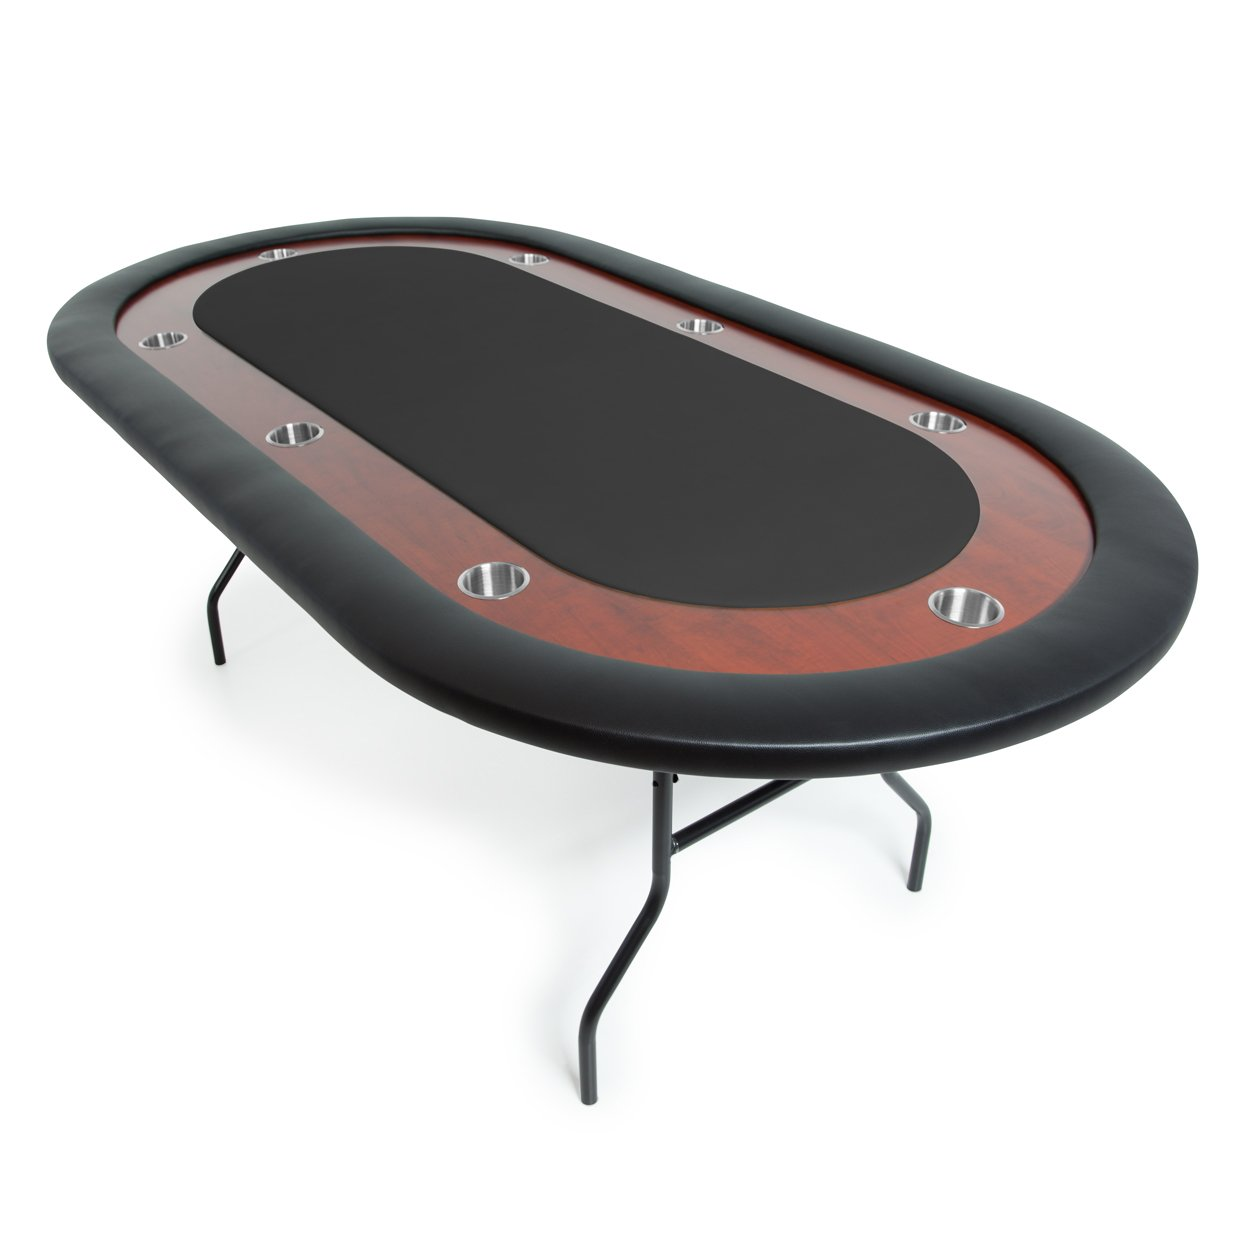 Ordinaire Amazon.com : BBO Poker Ultimate Jr. Folding Poker Table For 8 Players With  Black Felt Playing Surface, 82 X 44 Inch Oval : Sports U0026 Outdoors